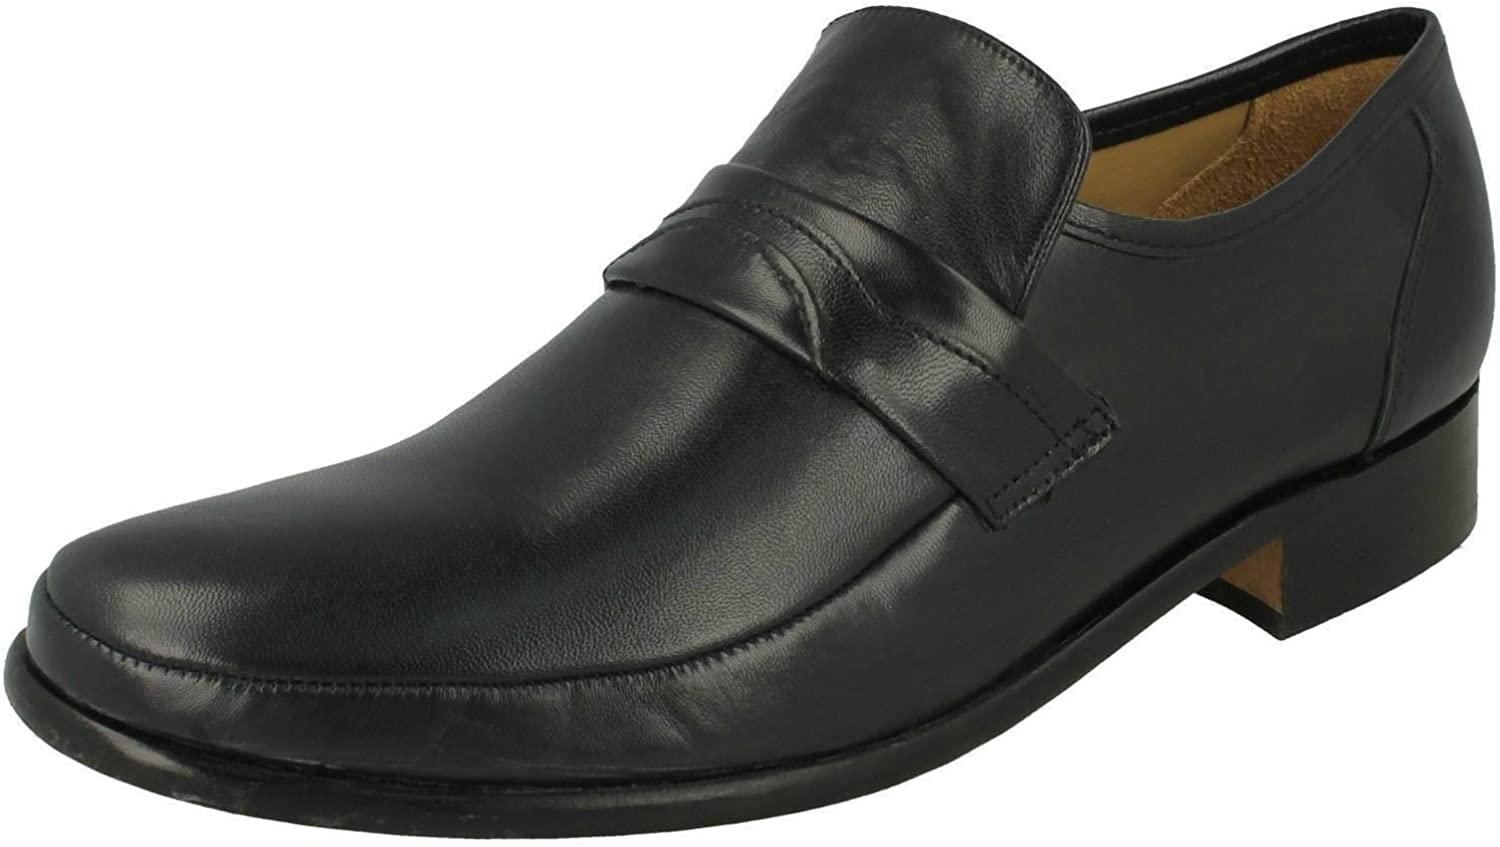 Mens Thomas bluent Formal Slip On Loafer shoes 'Swindon 2'